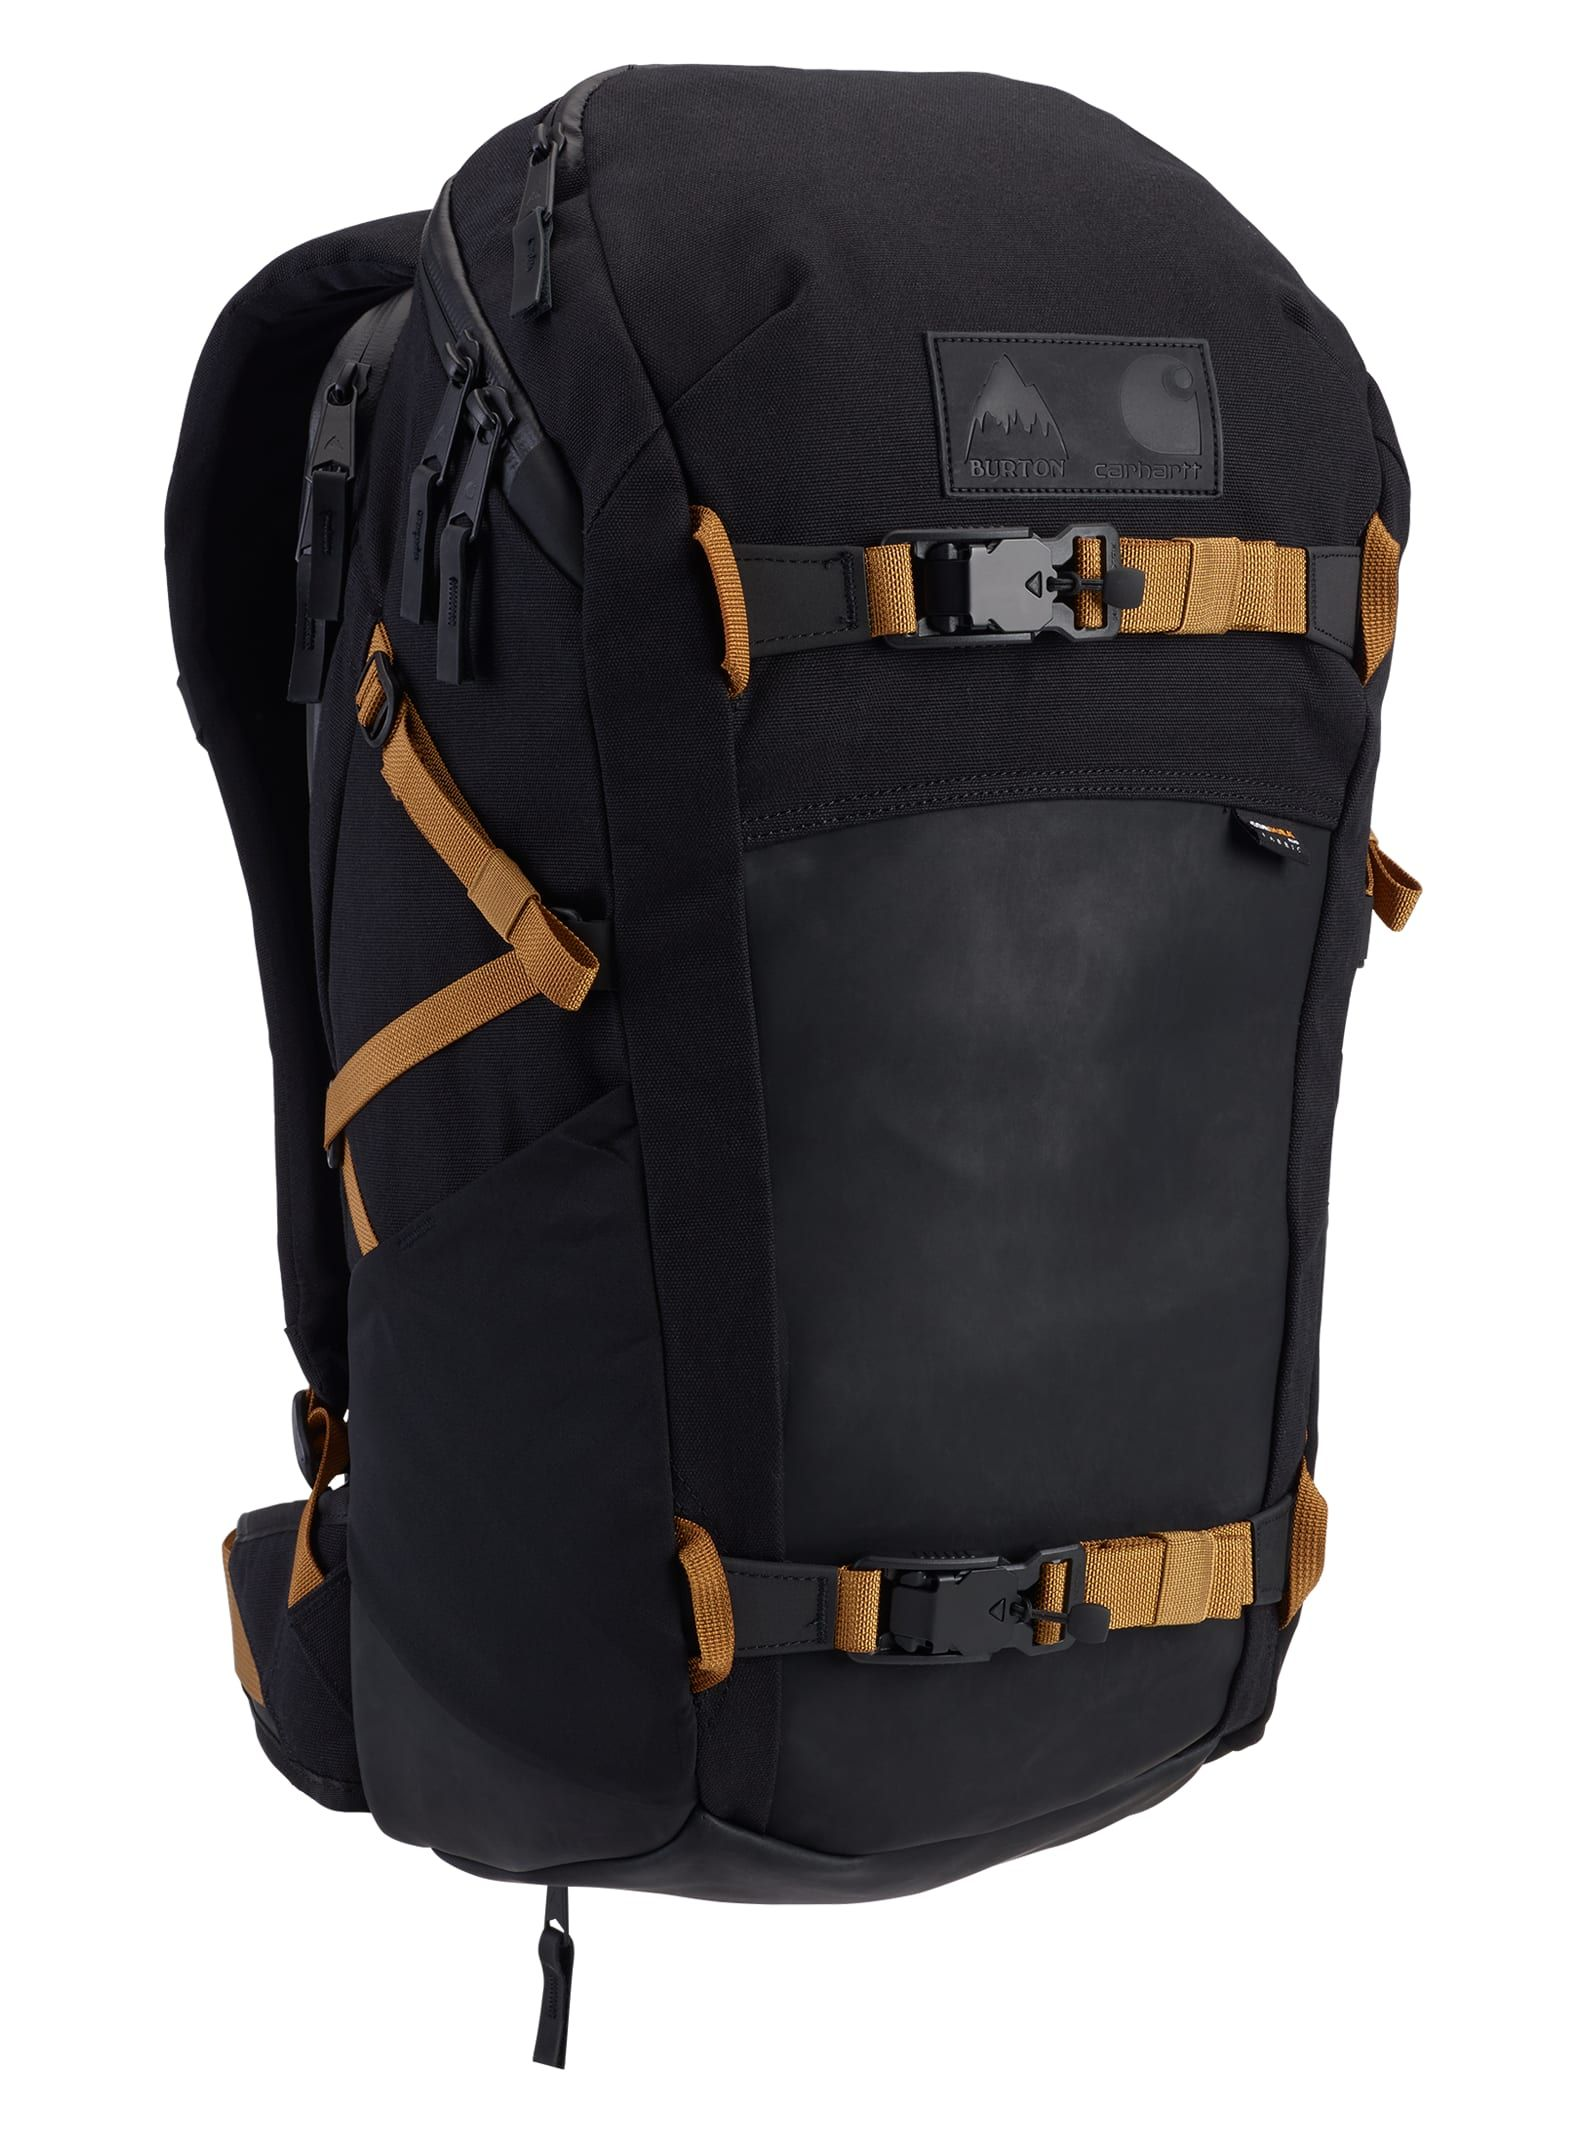 49c5ff4b1c Carhartt WIP x Burton Day Hiker 31L Backpack | Products | Backpacks ...